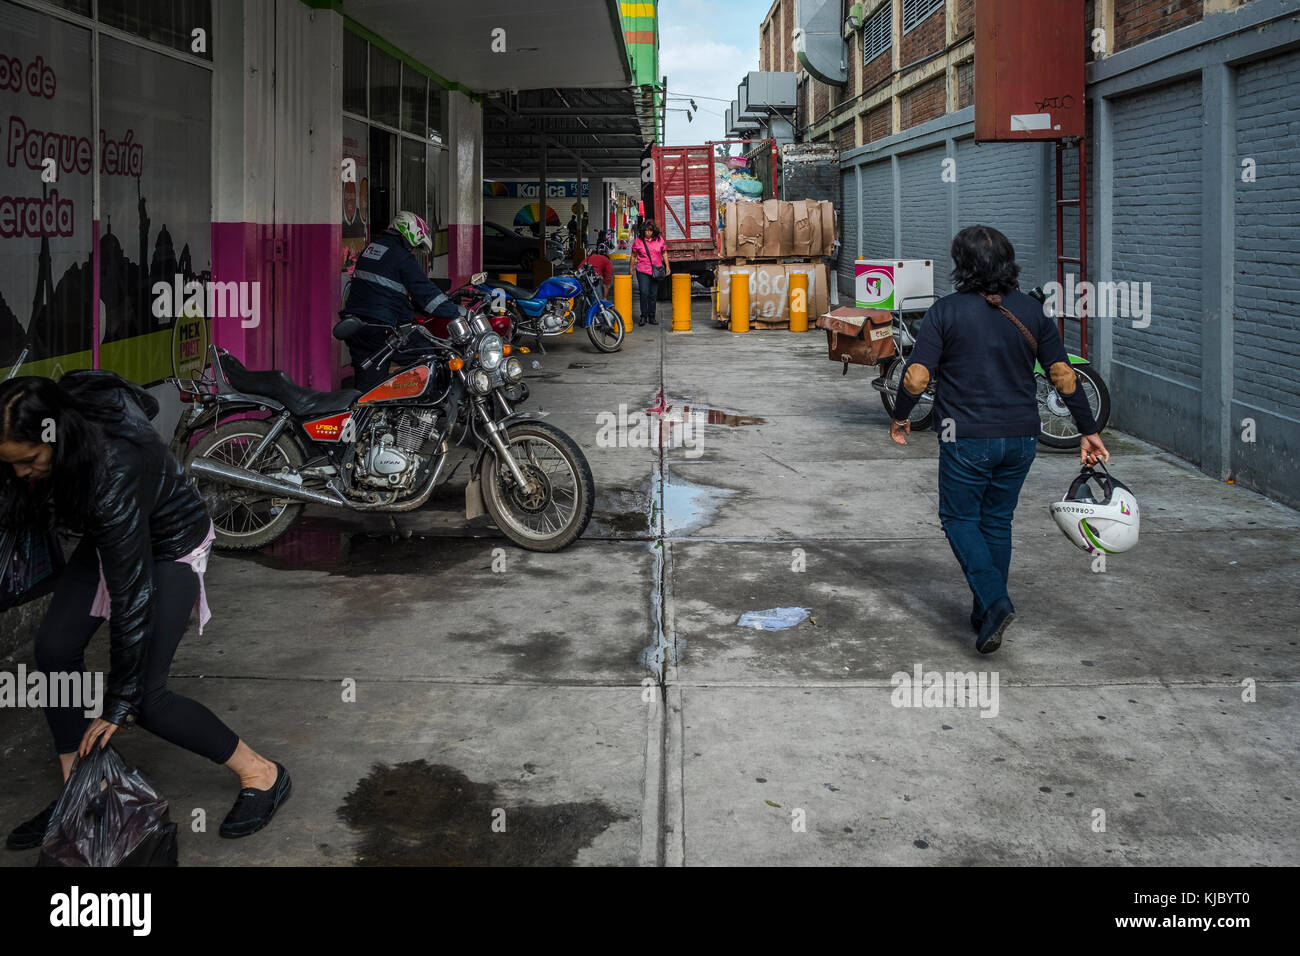 Postoffice, mail delivery, Mexico city, Mexico. - Stock Image